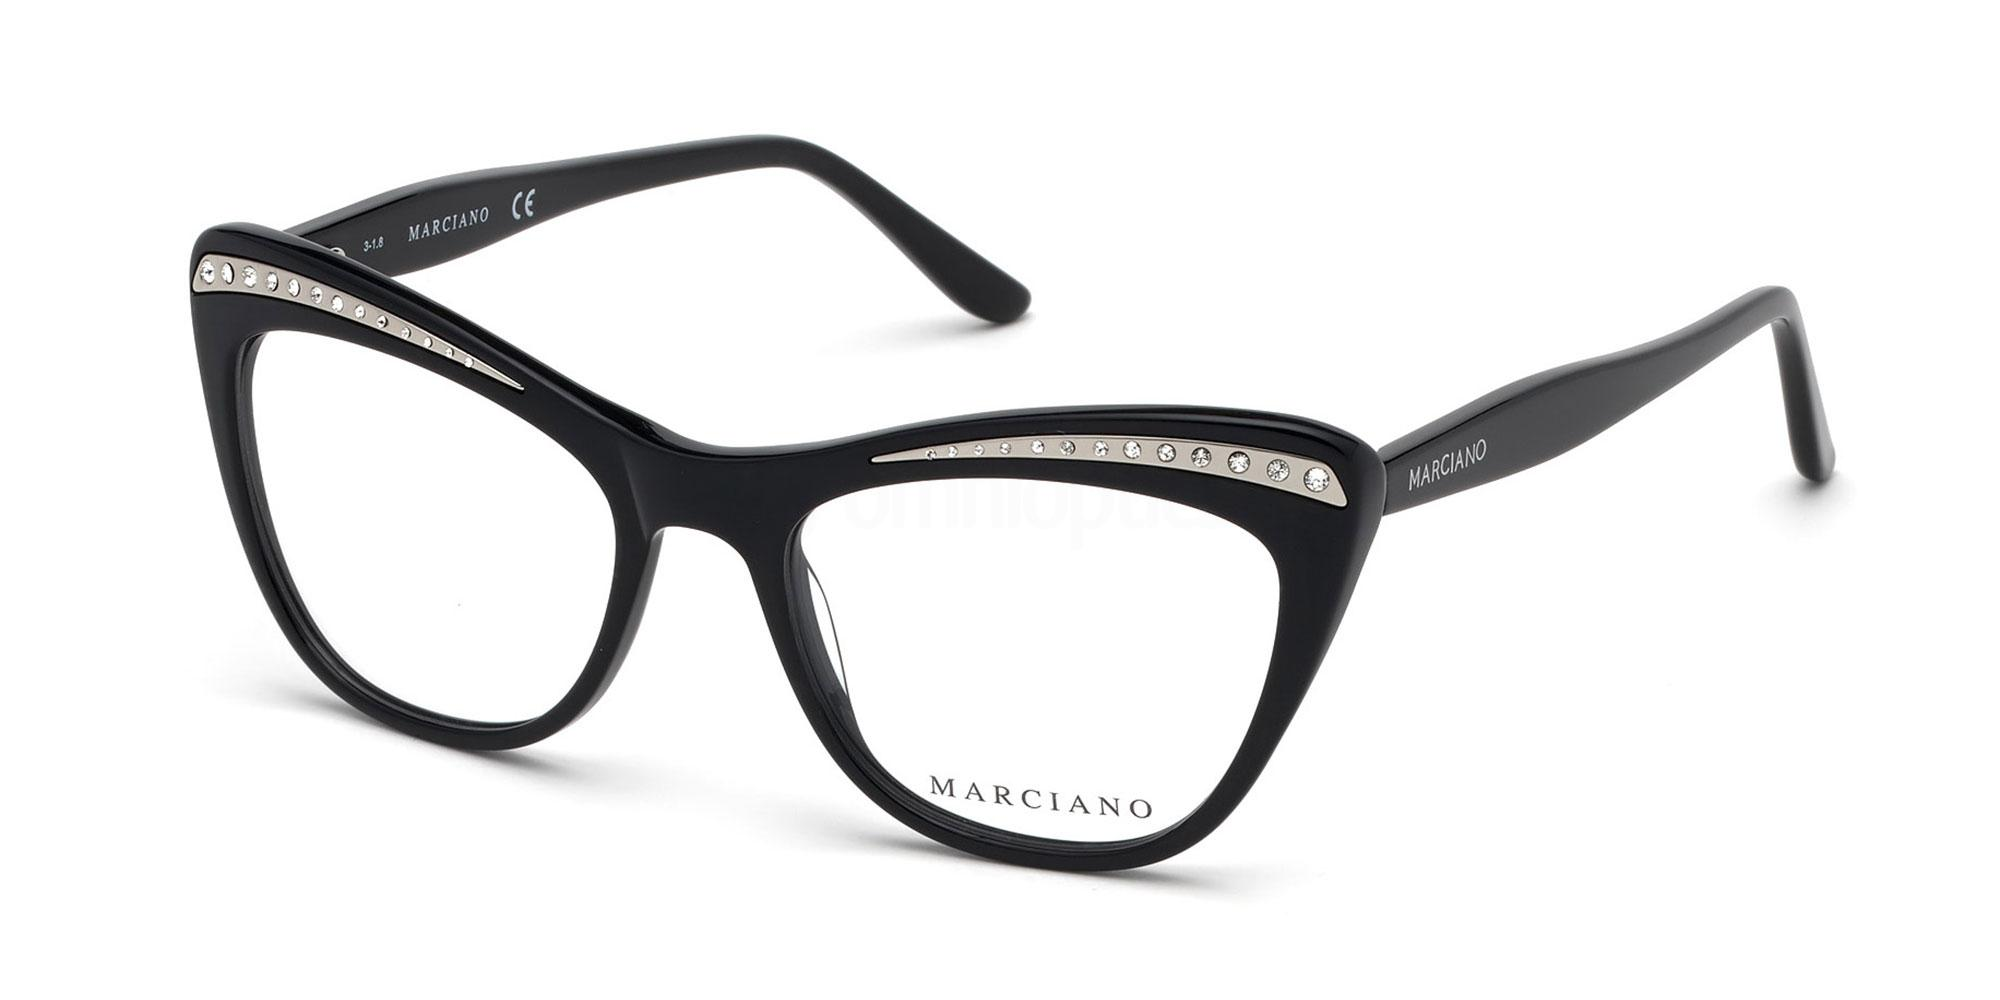 001 GM0337 Glasses, Guess by Marciano